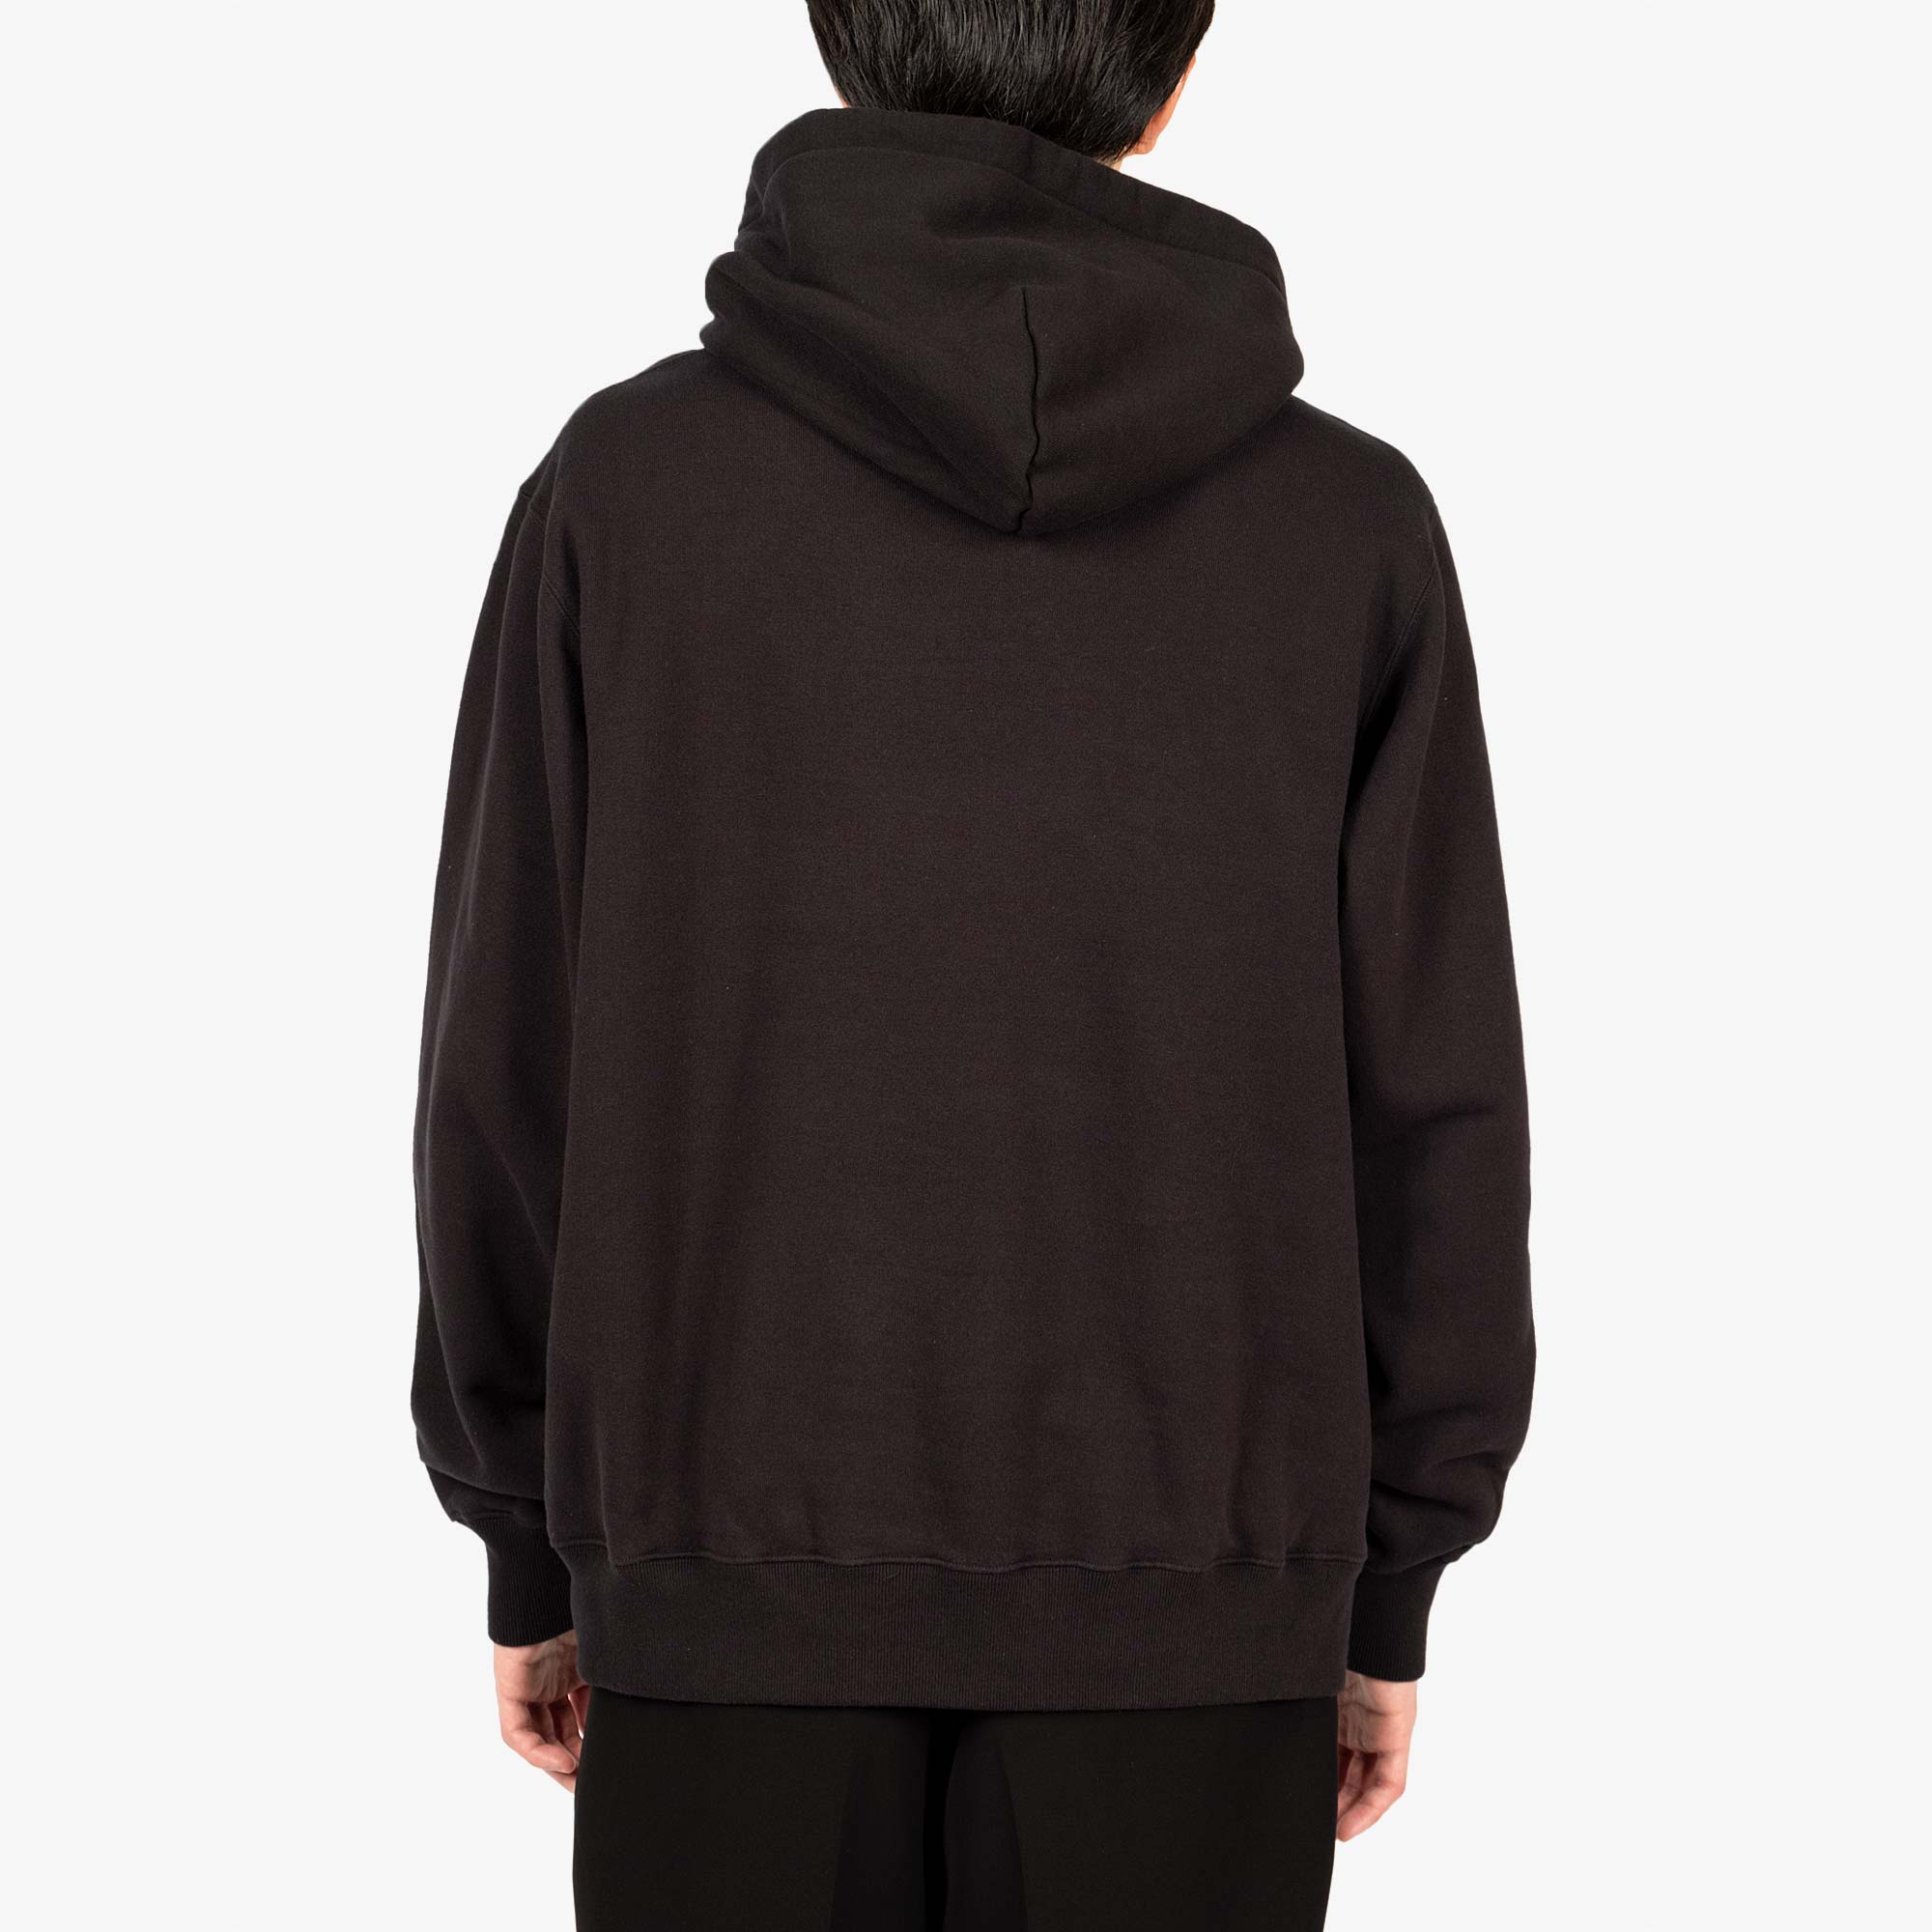 Undercover Climbing Logo Hooded Sweat UC2A4894-3 - Black 6